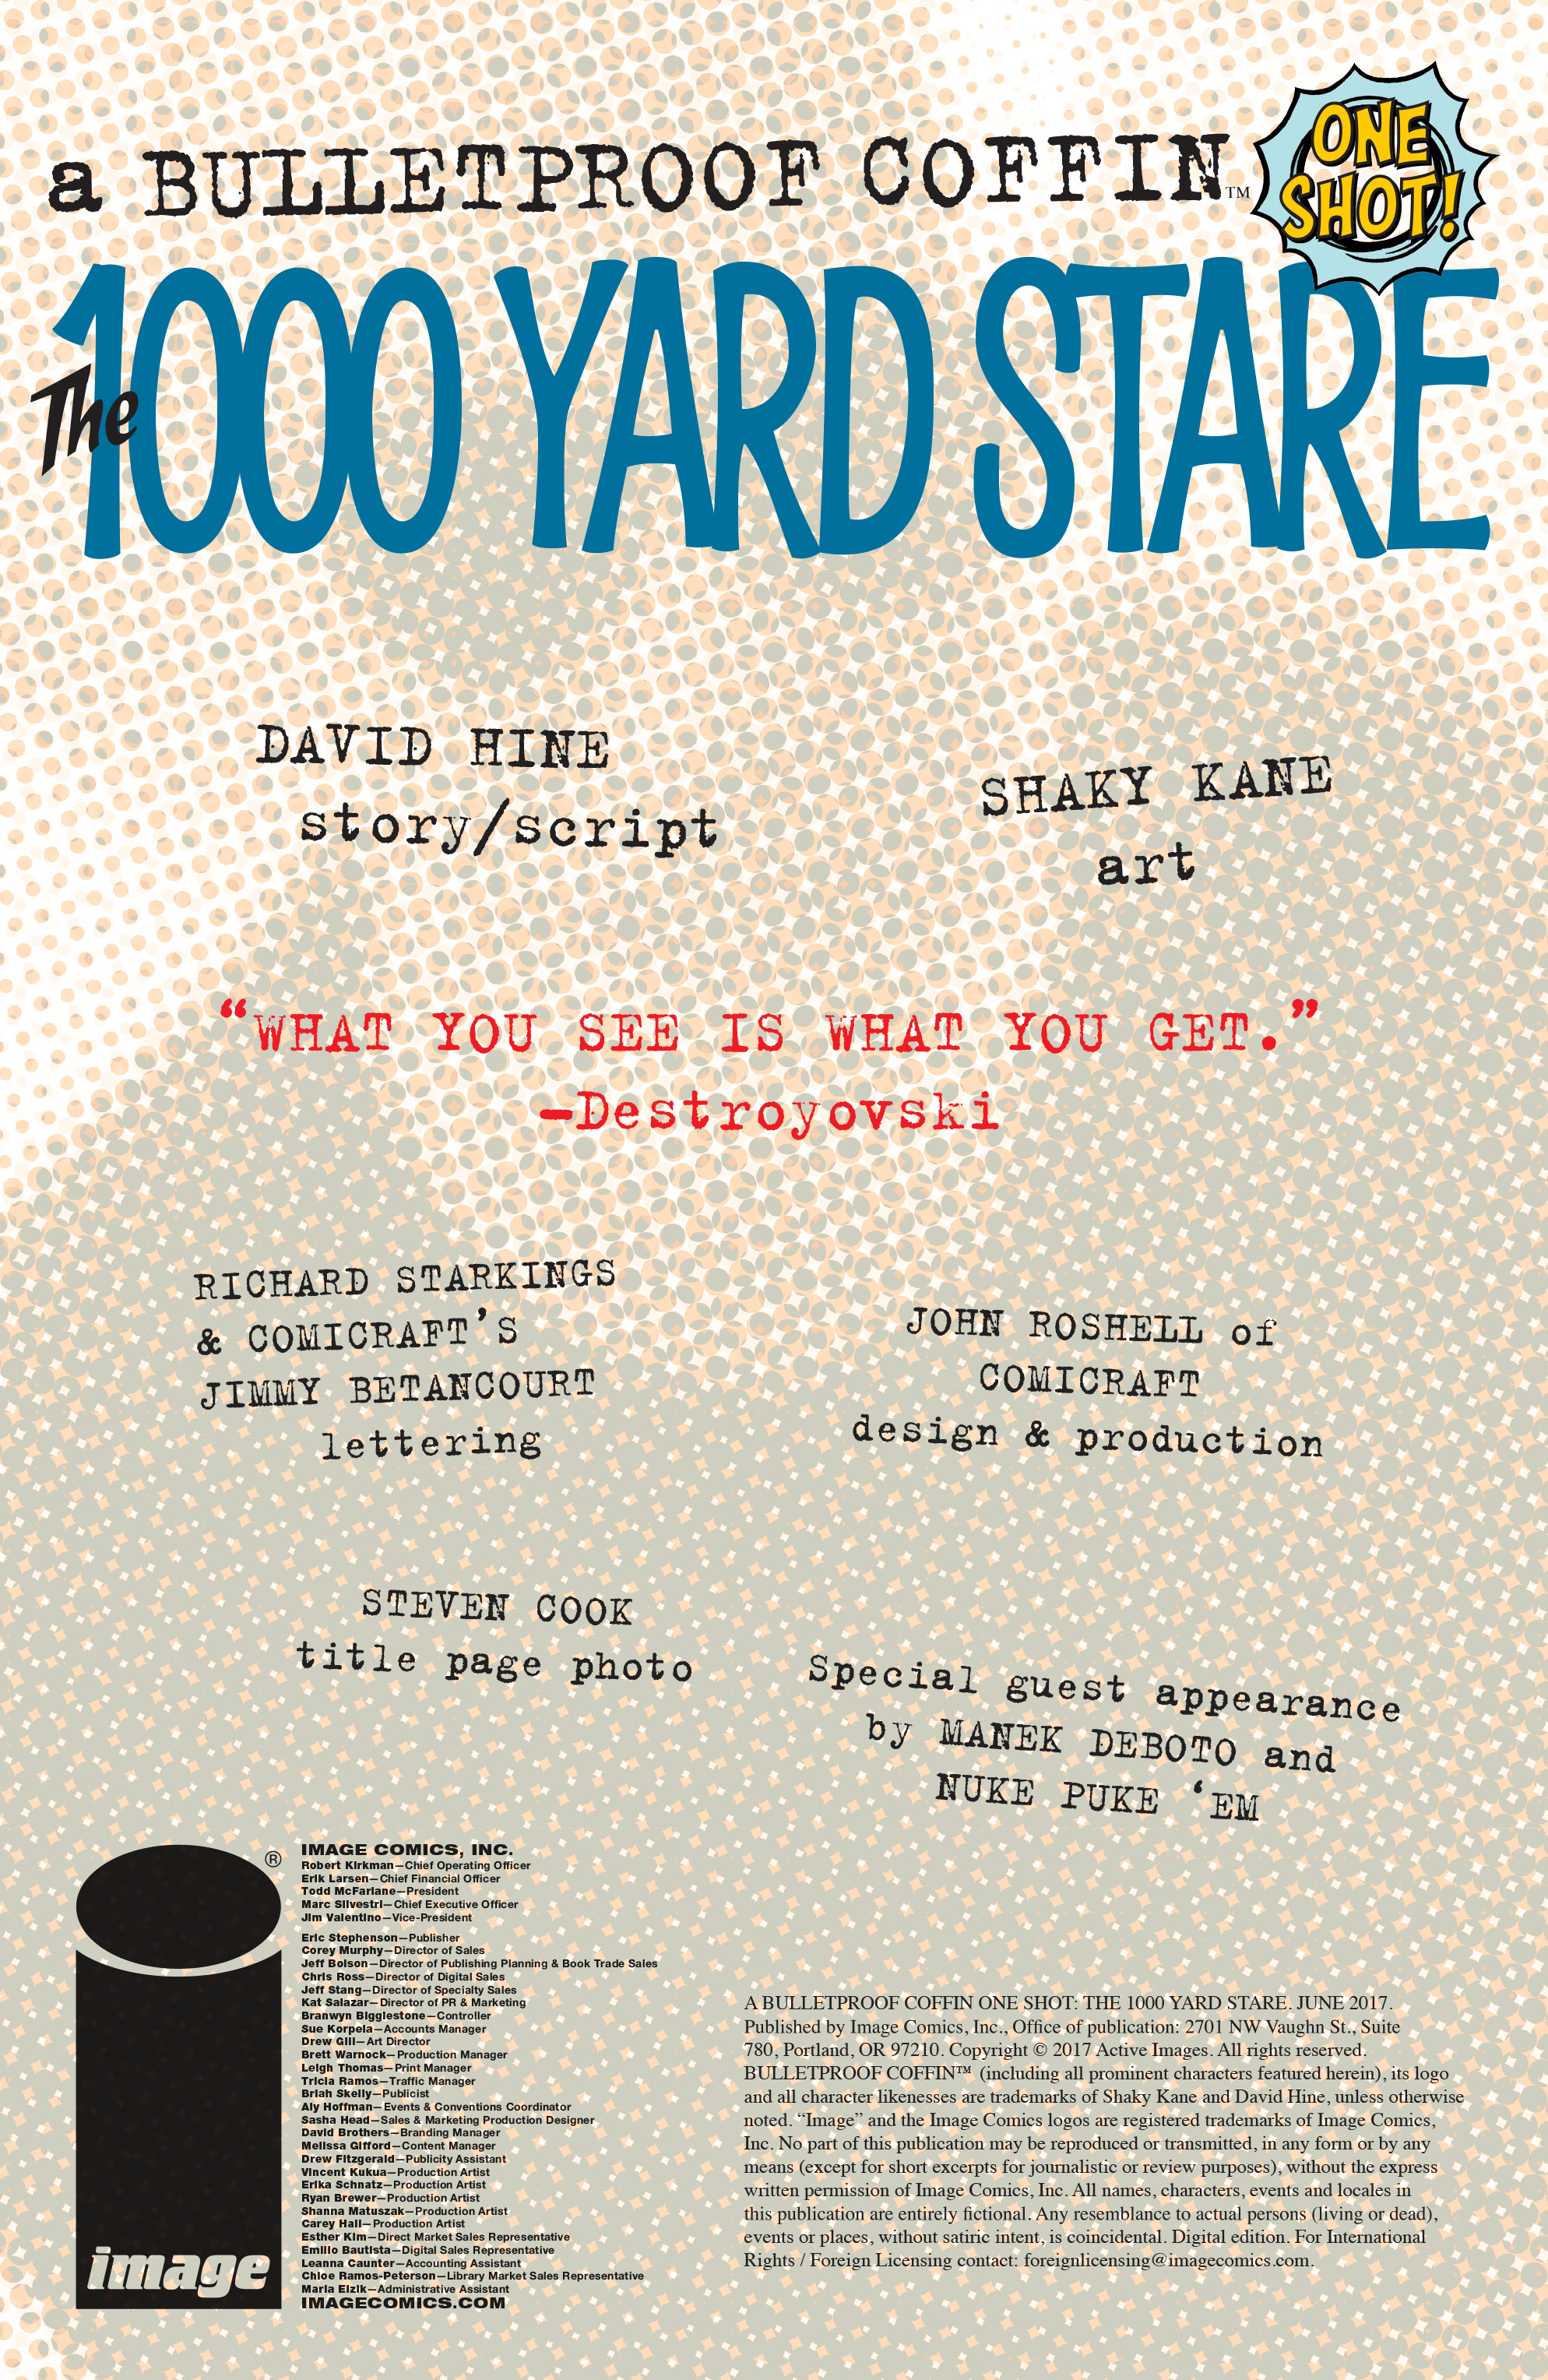 Read online Bulletproof Coffin: The Thousand Yard Stare comic -  Issue # Full - 2